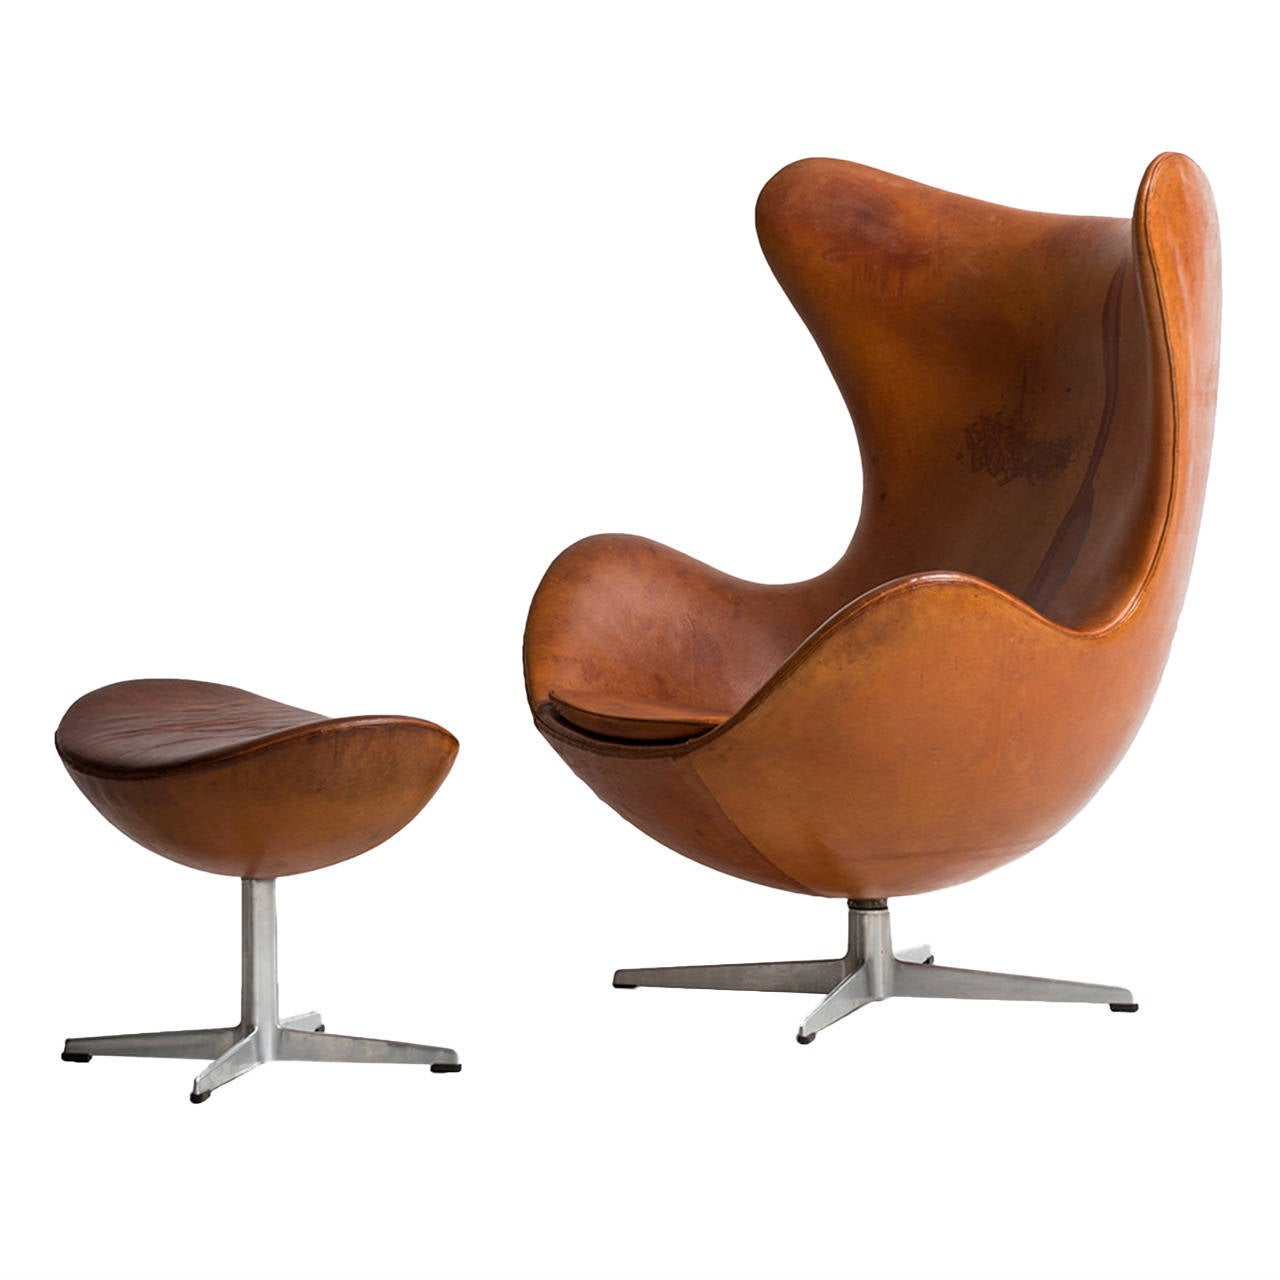 Beau Arne Jacobsen Egg Chair In Original Cognac Brown Leather By Fritz Hansen  For Sale